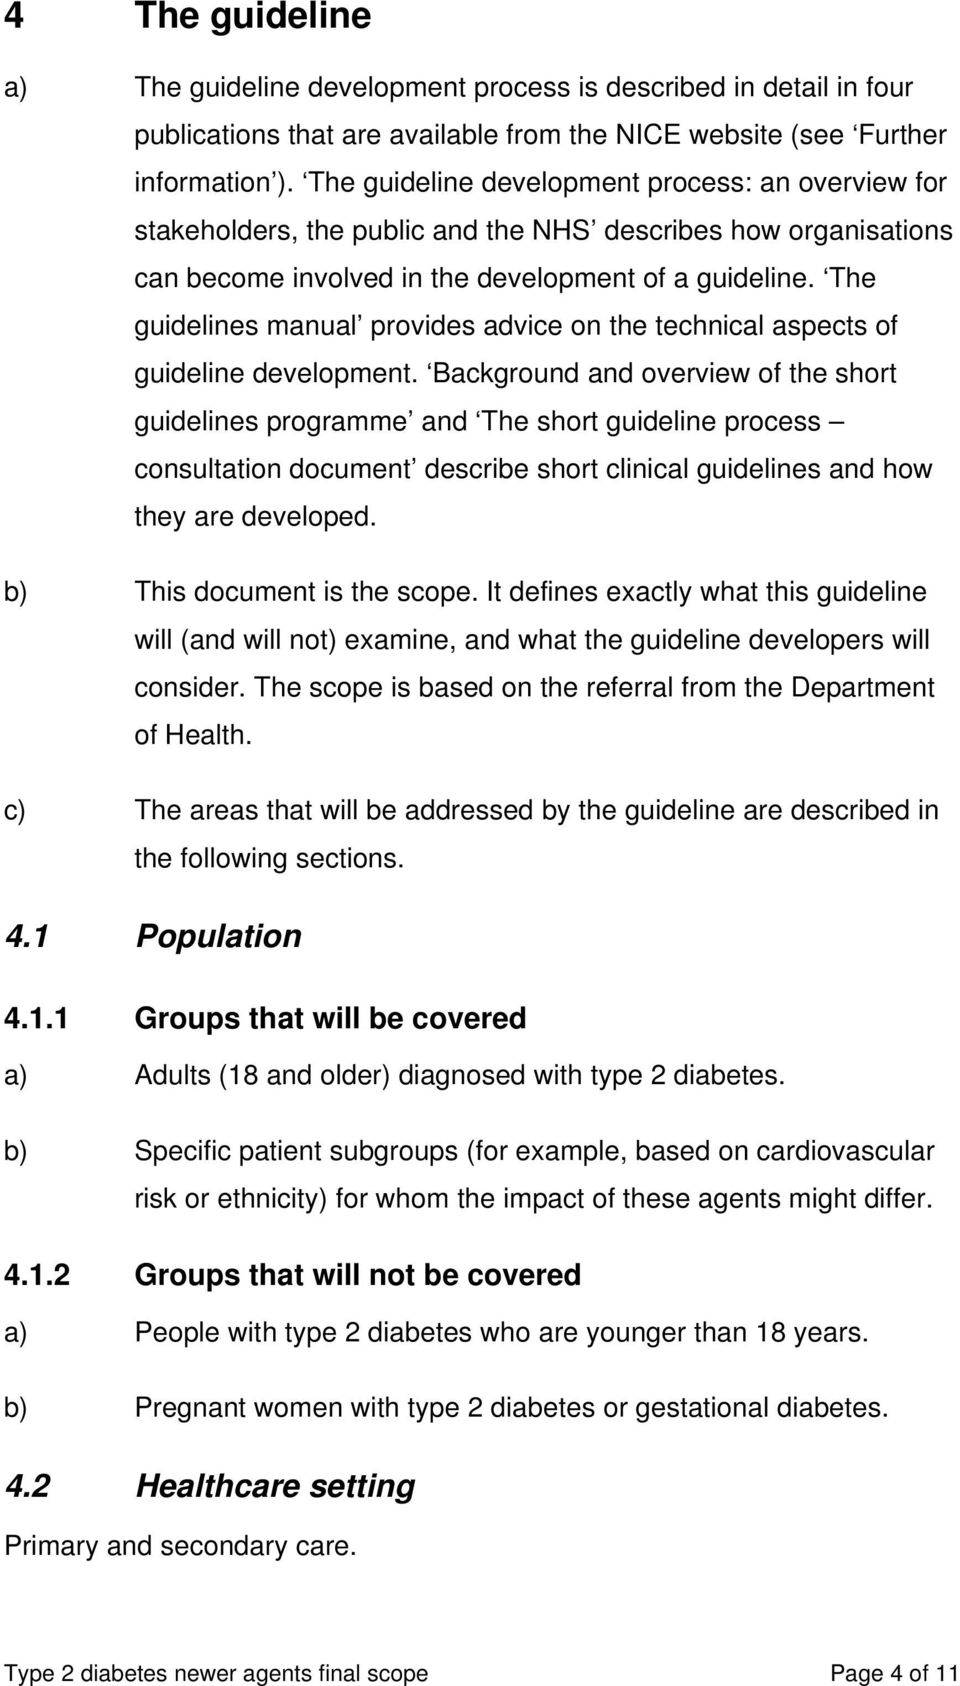 The guidelines manual provides advice on the technical aspects of guideline development.